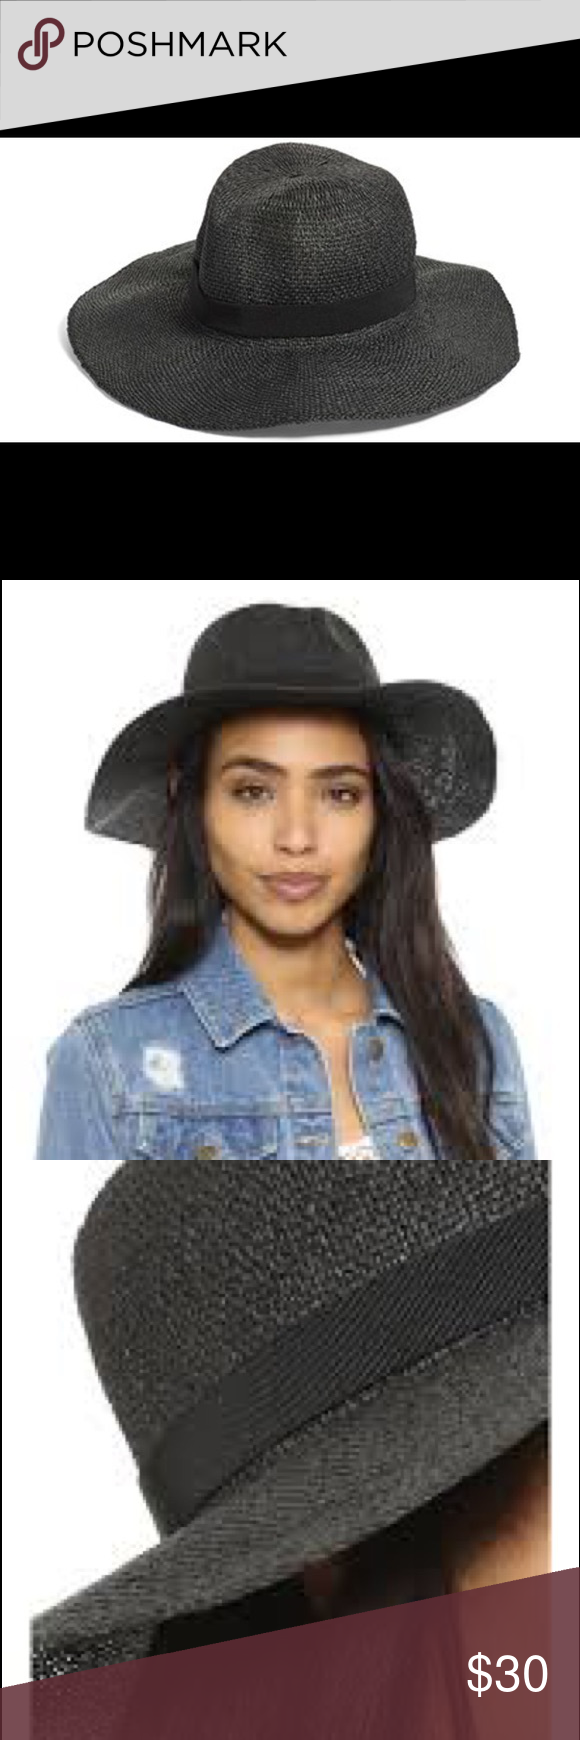 fdf0b7f15c0cc Madewell Packable Woven Hat Scrunchable and unstructured